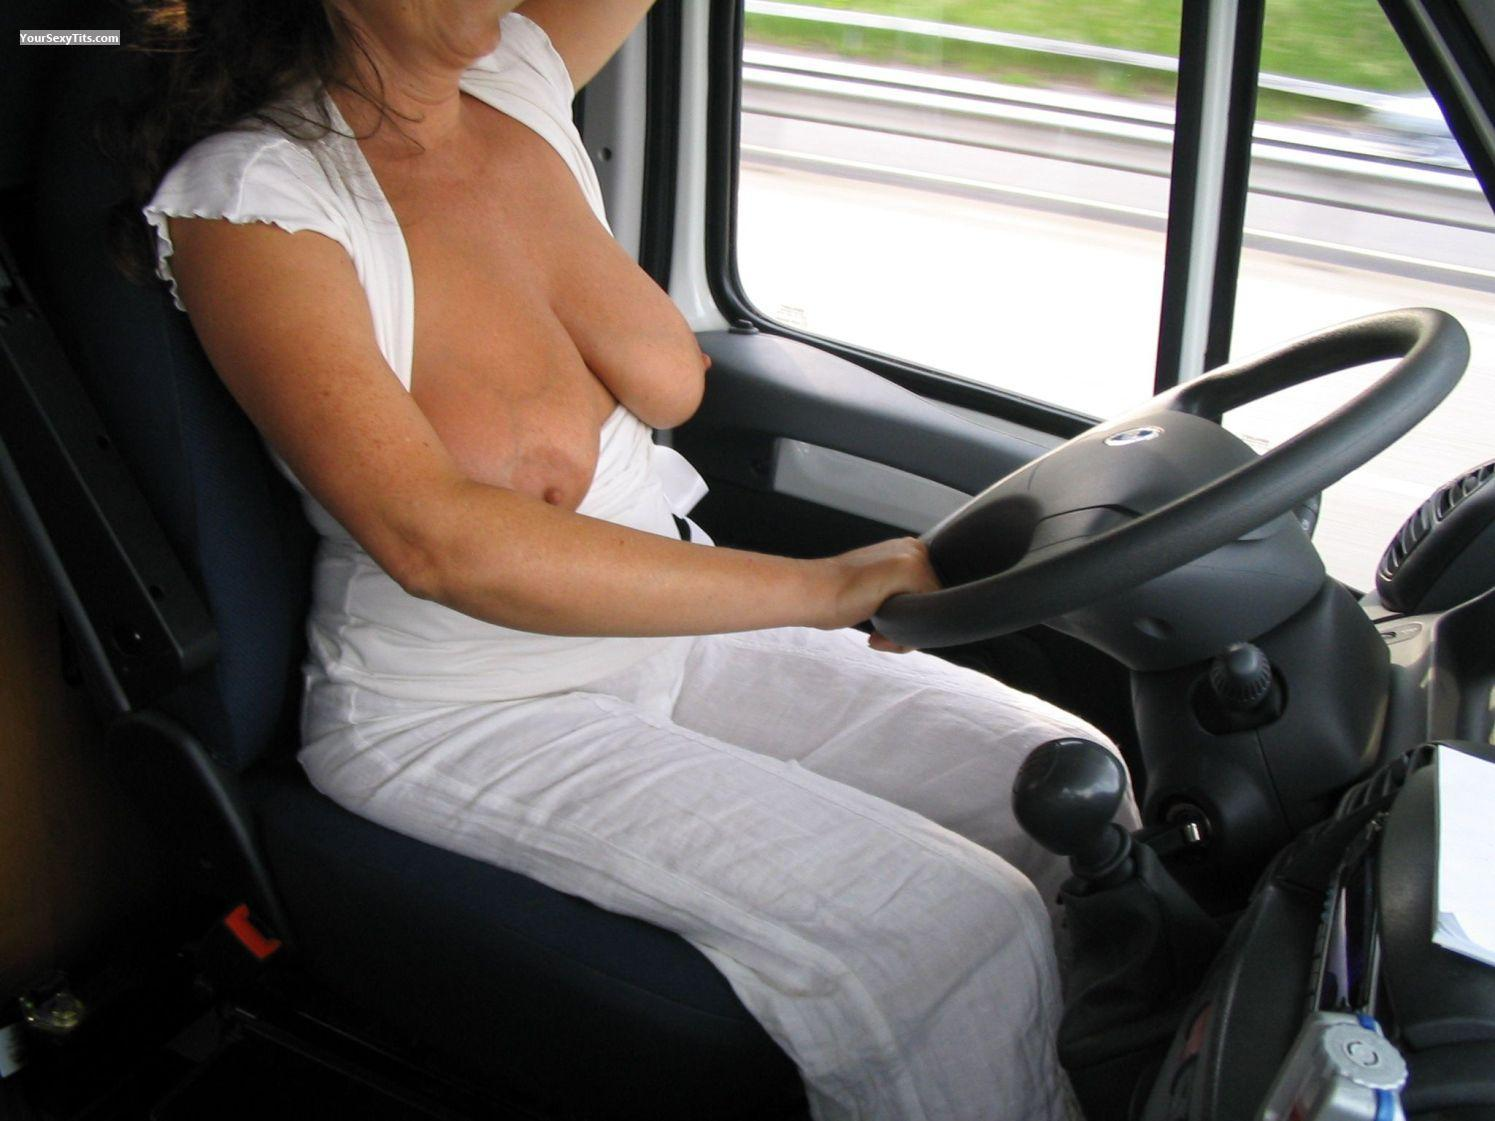 Tits on the road